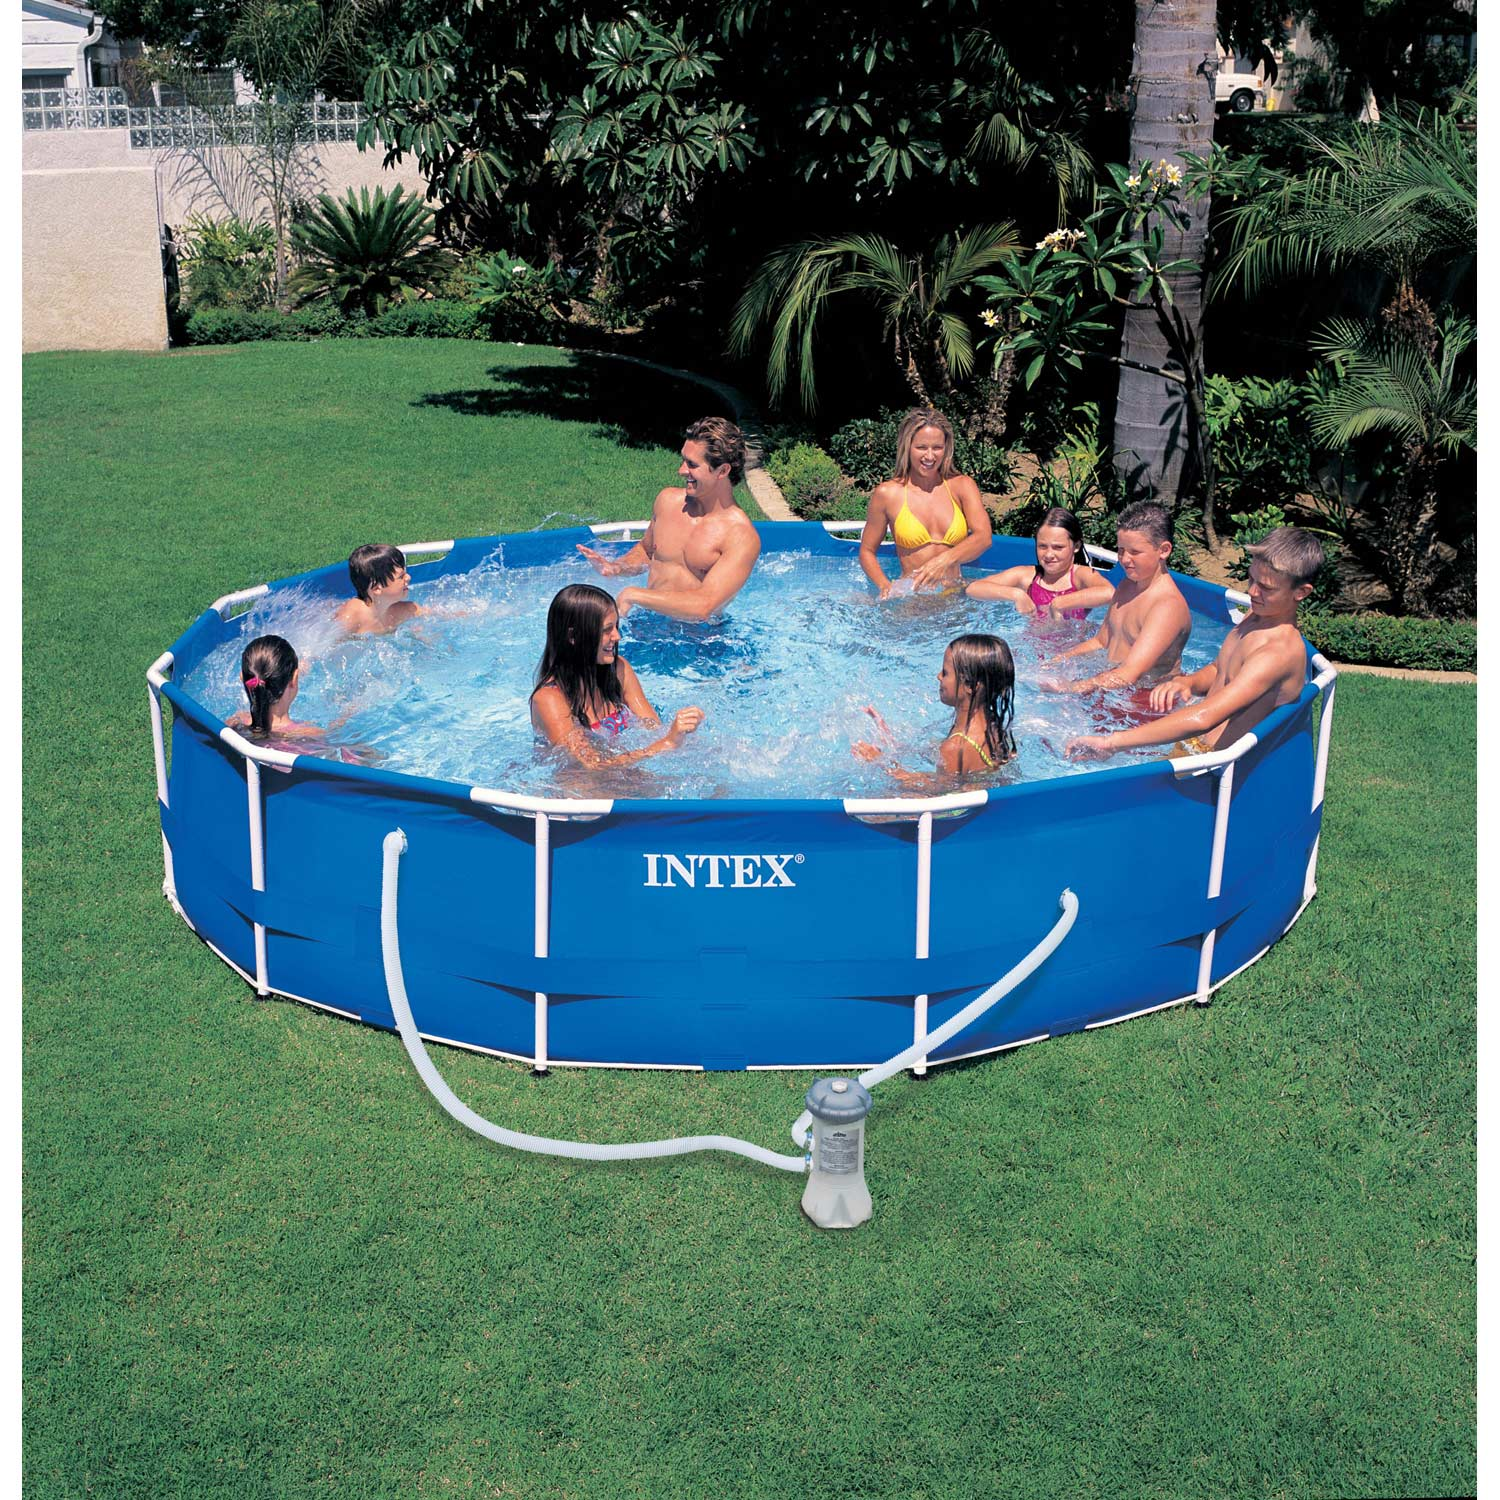 Piscine hors sol autoportante tubulaire metal frame intex for Skimmer piscine tubulaire hors sol